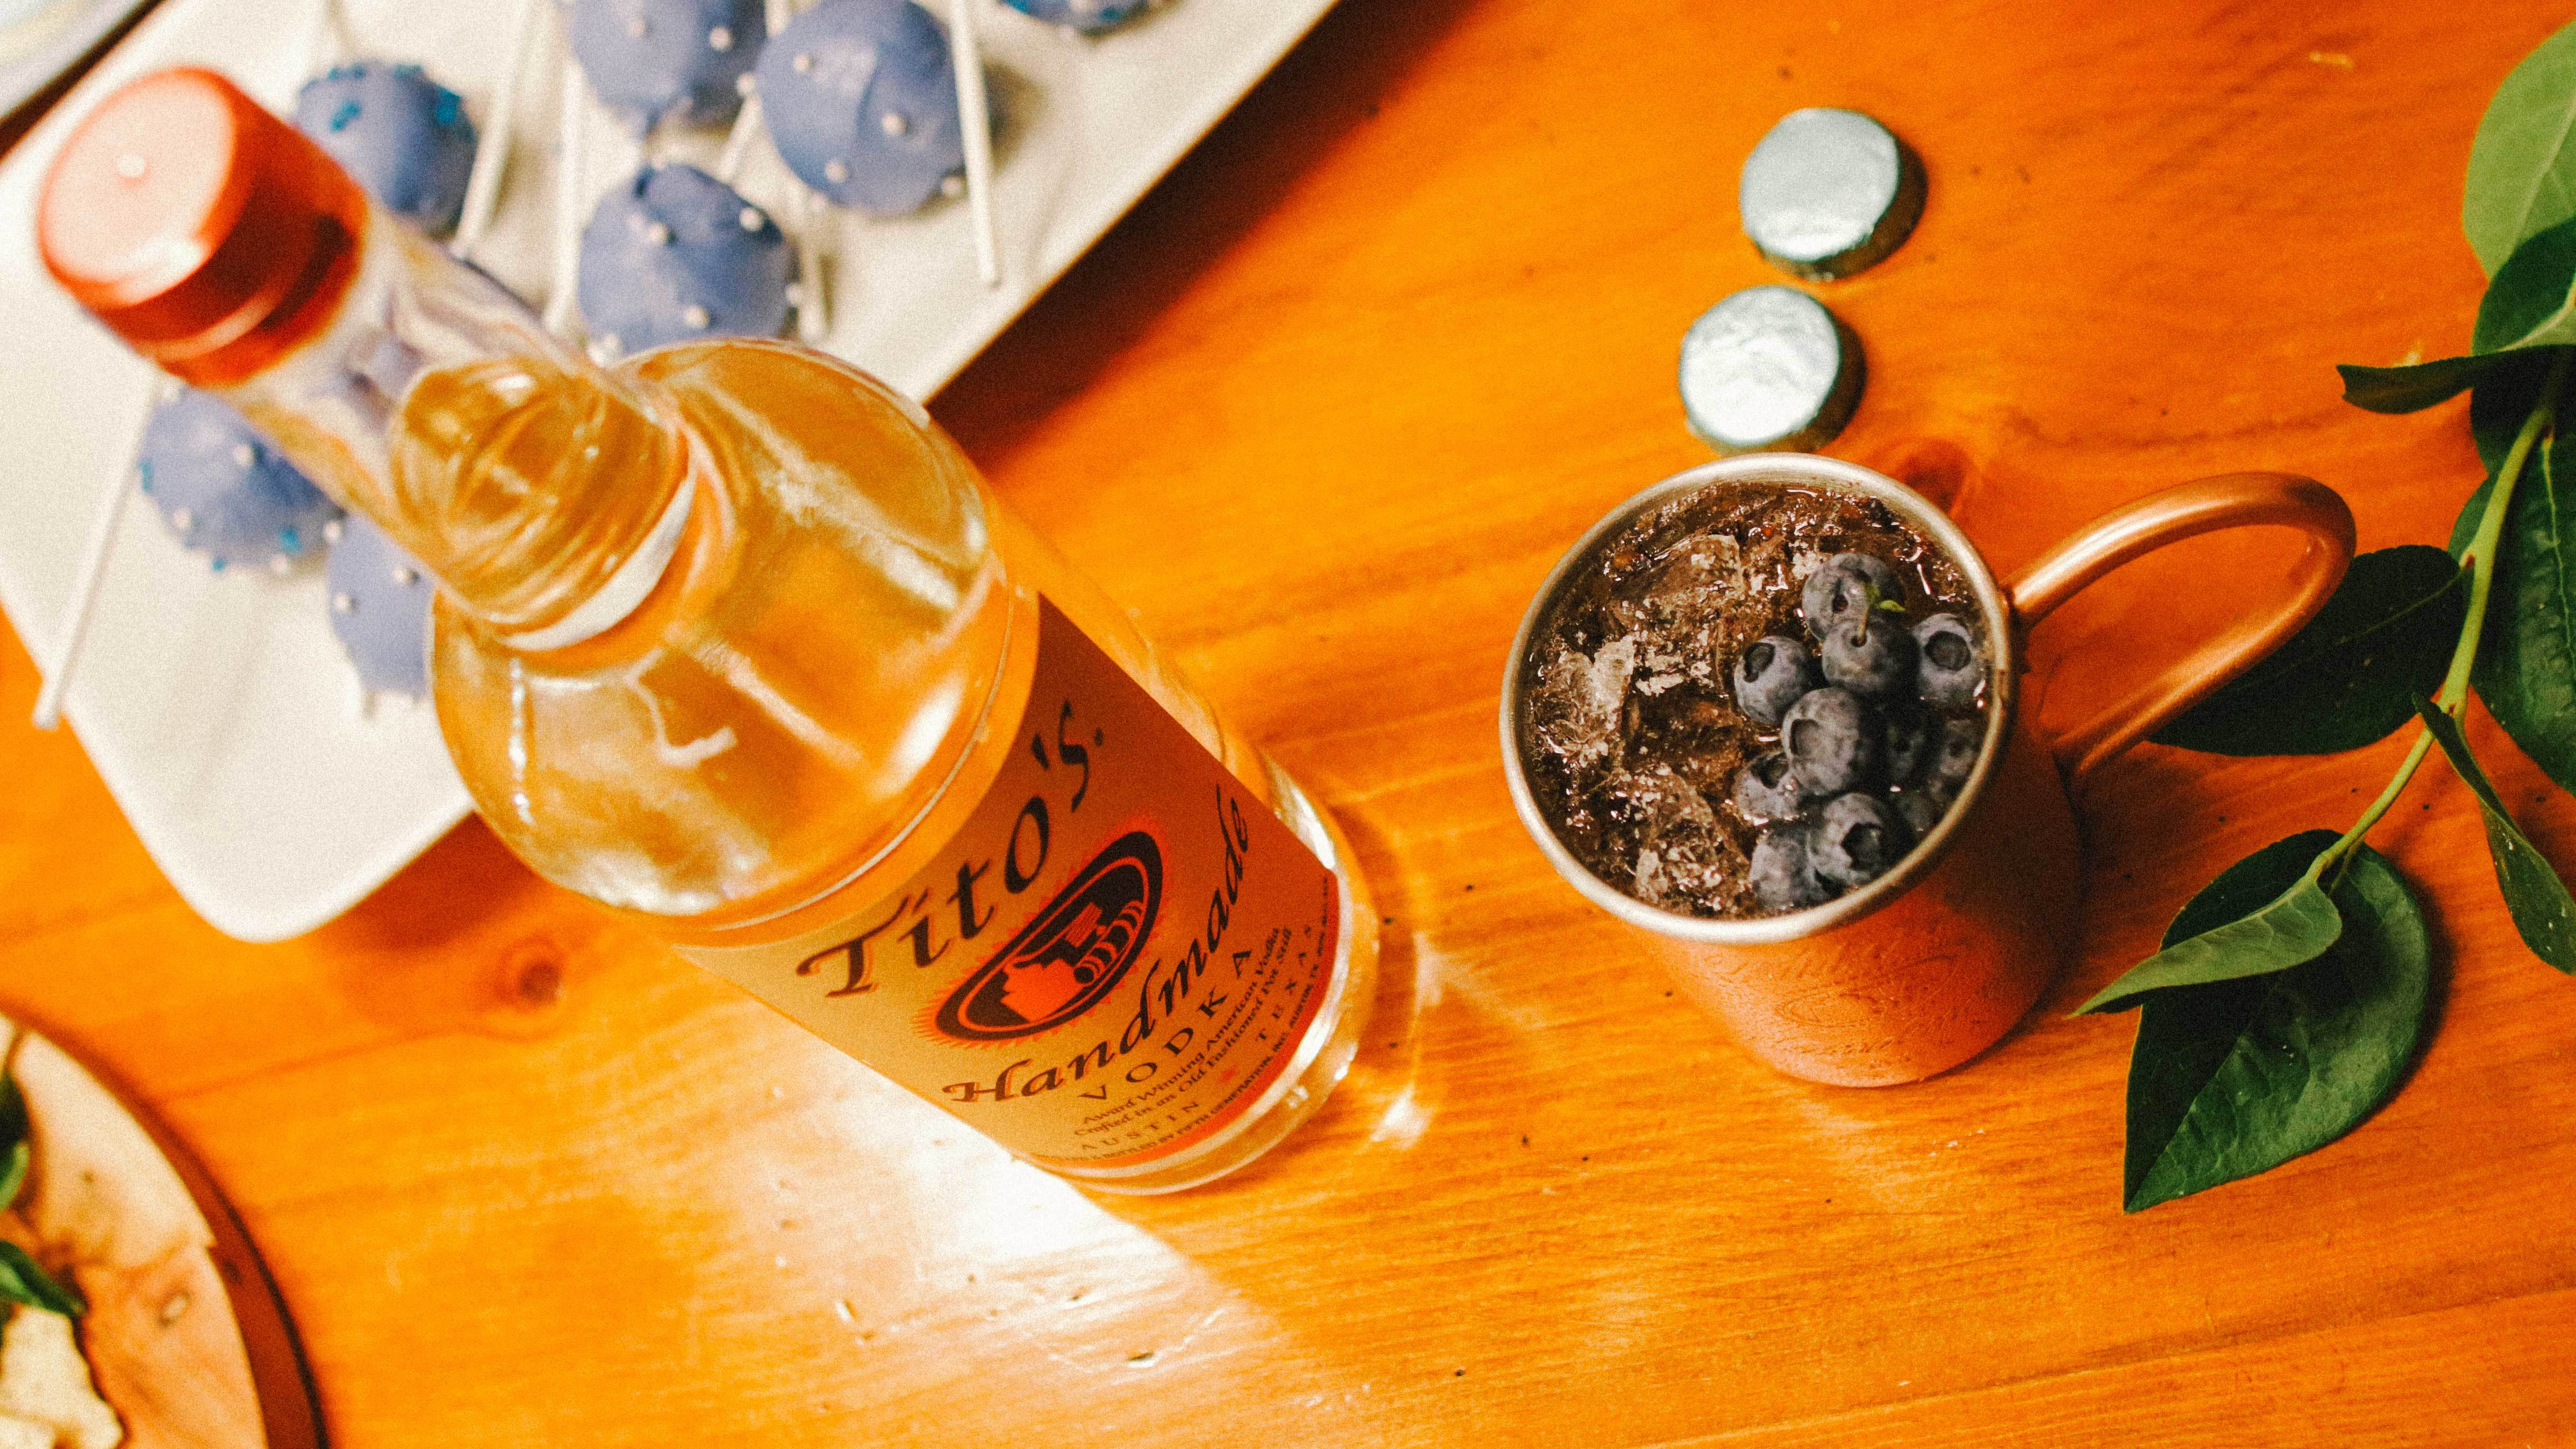 Tito's Vodka bottle next to a Blueberry Mule in a copper Mug garnished with blueberries